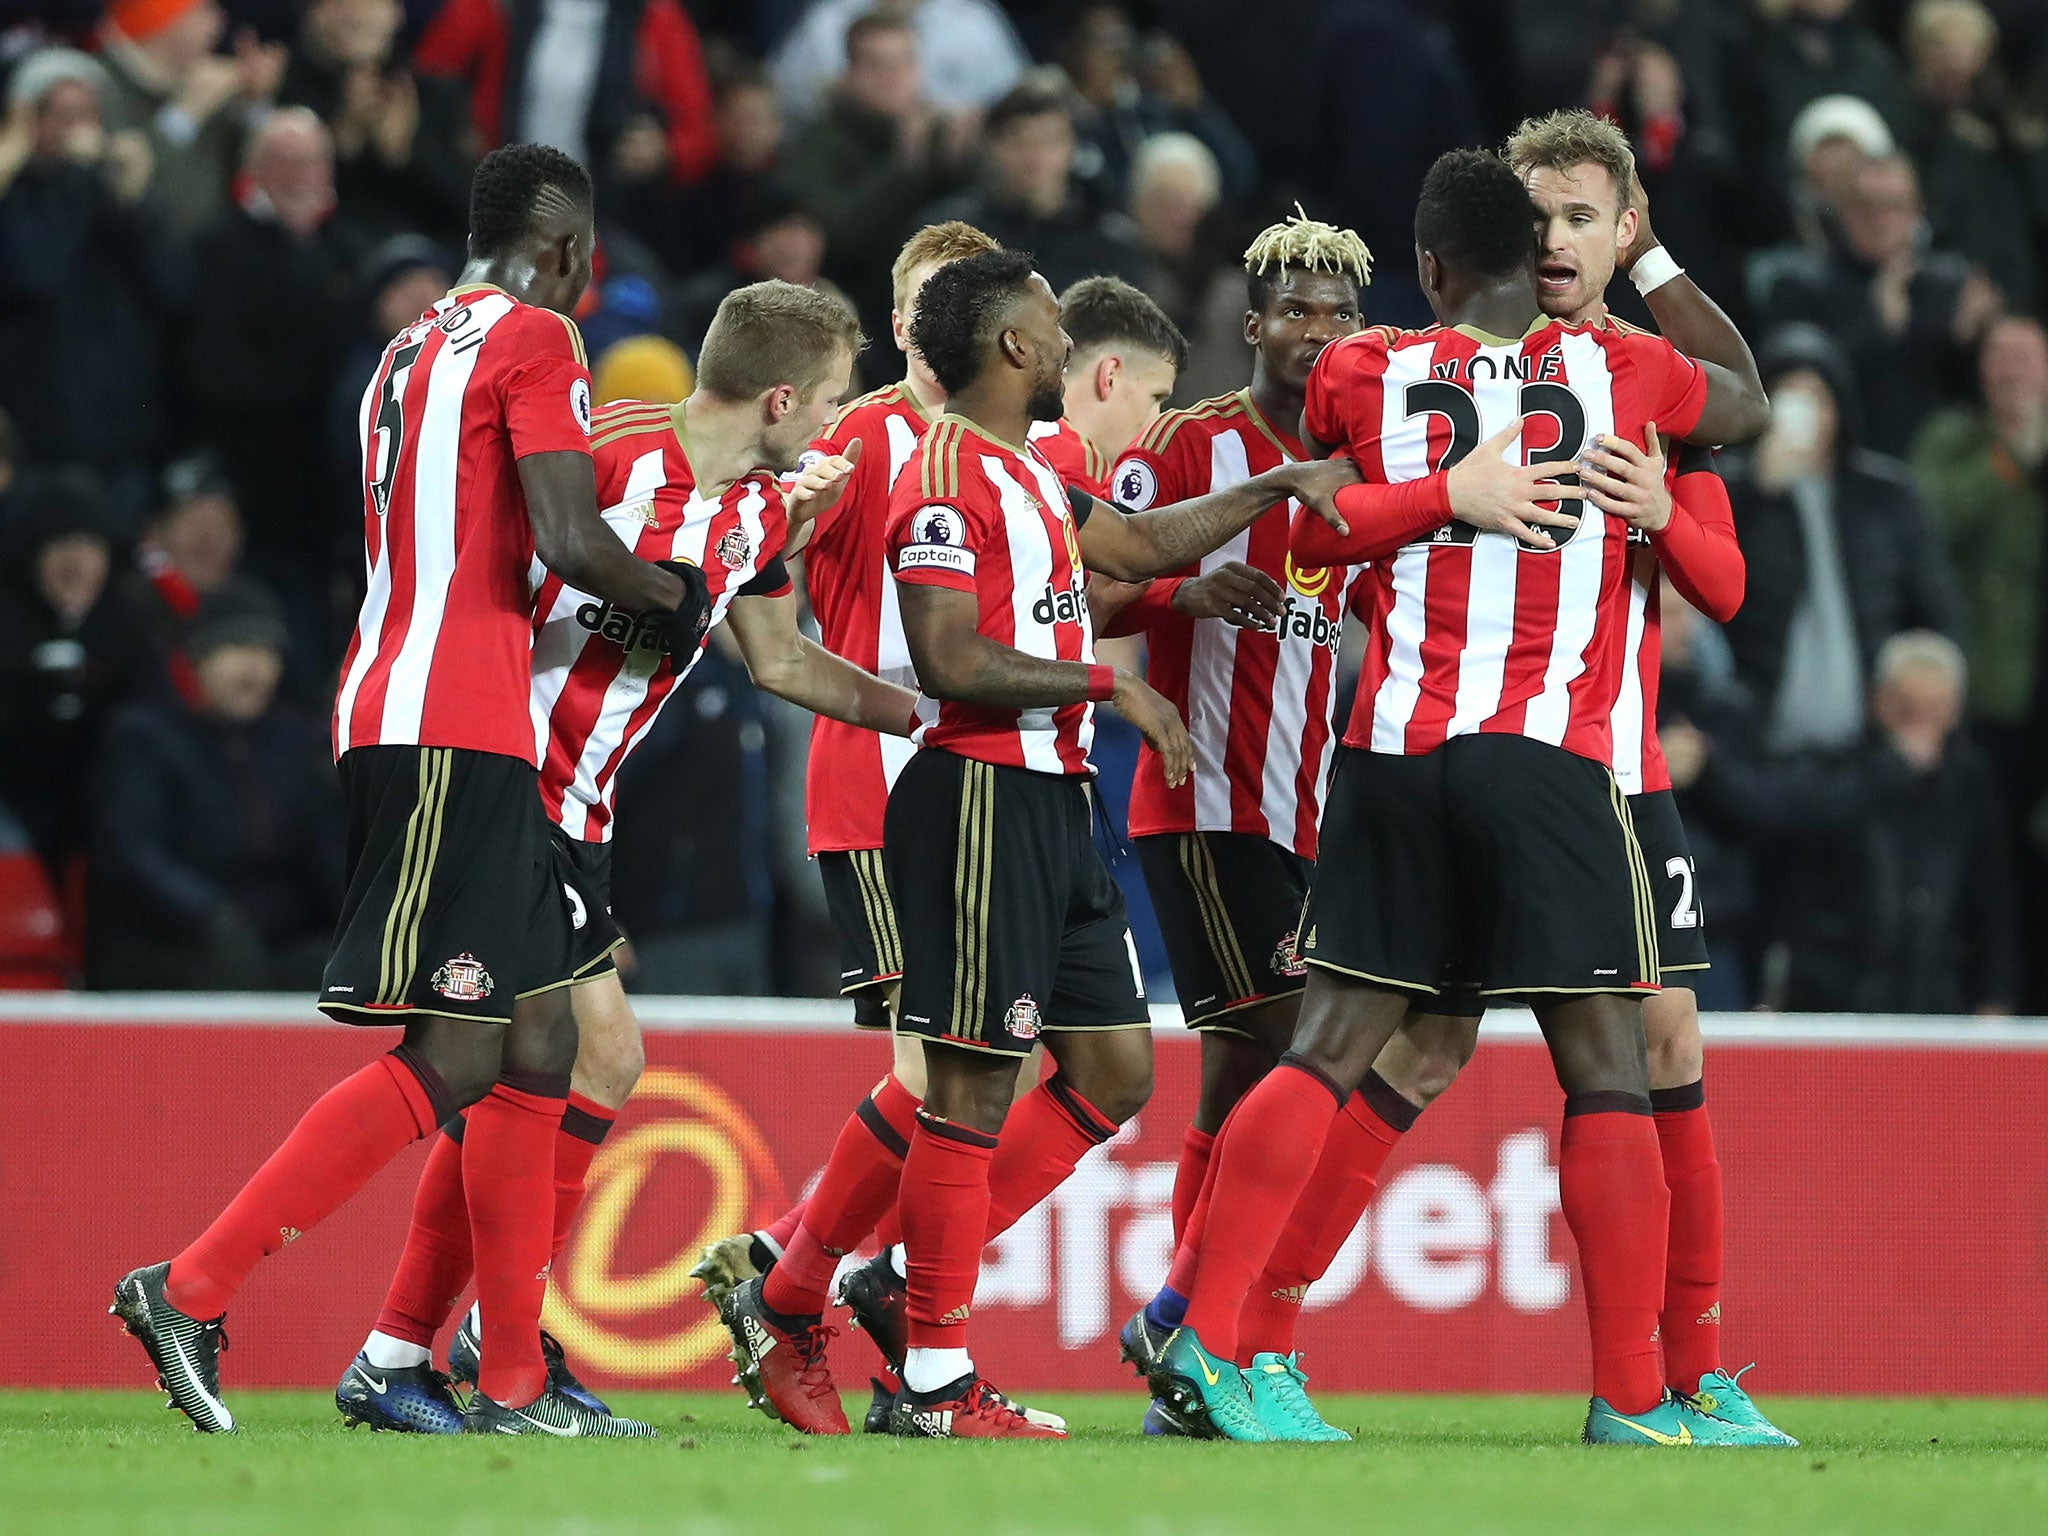 Sunderland vs Leicester match report Jermain Defoe condemns Foxes 2048x1536